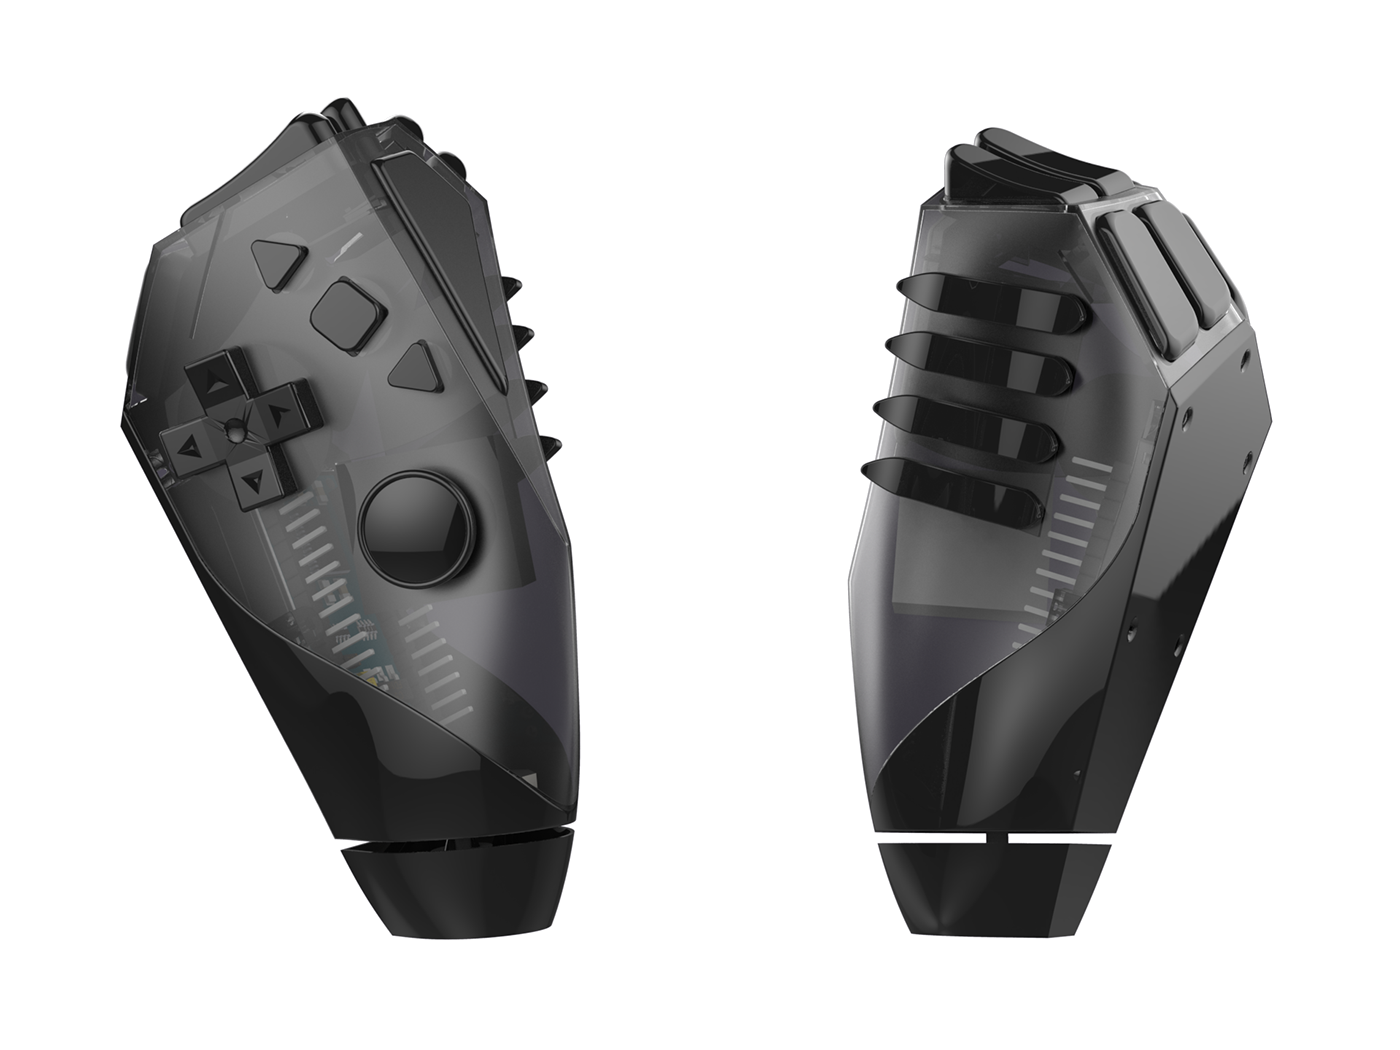 Videogames Accessibility controller gamepad fusion 360 product design  motor disabilities Left hand 3d printing open source